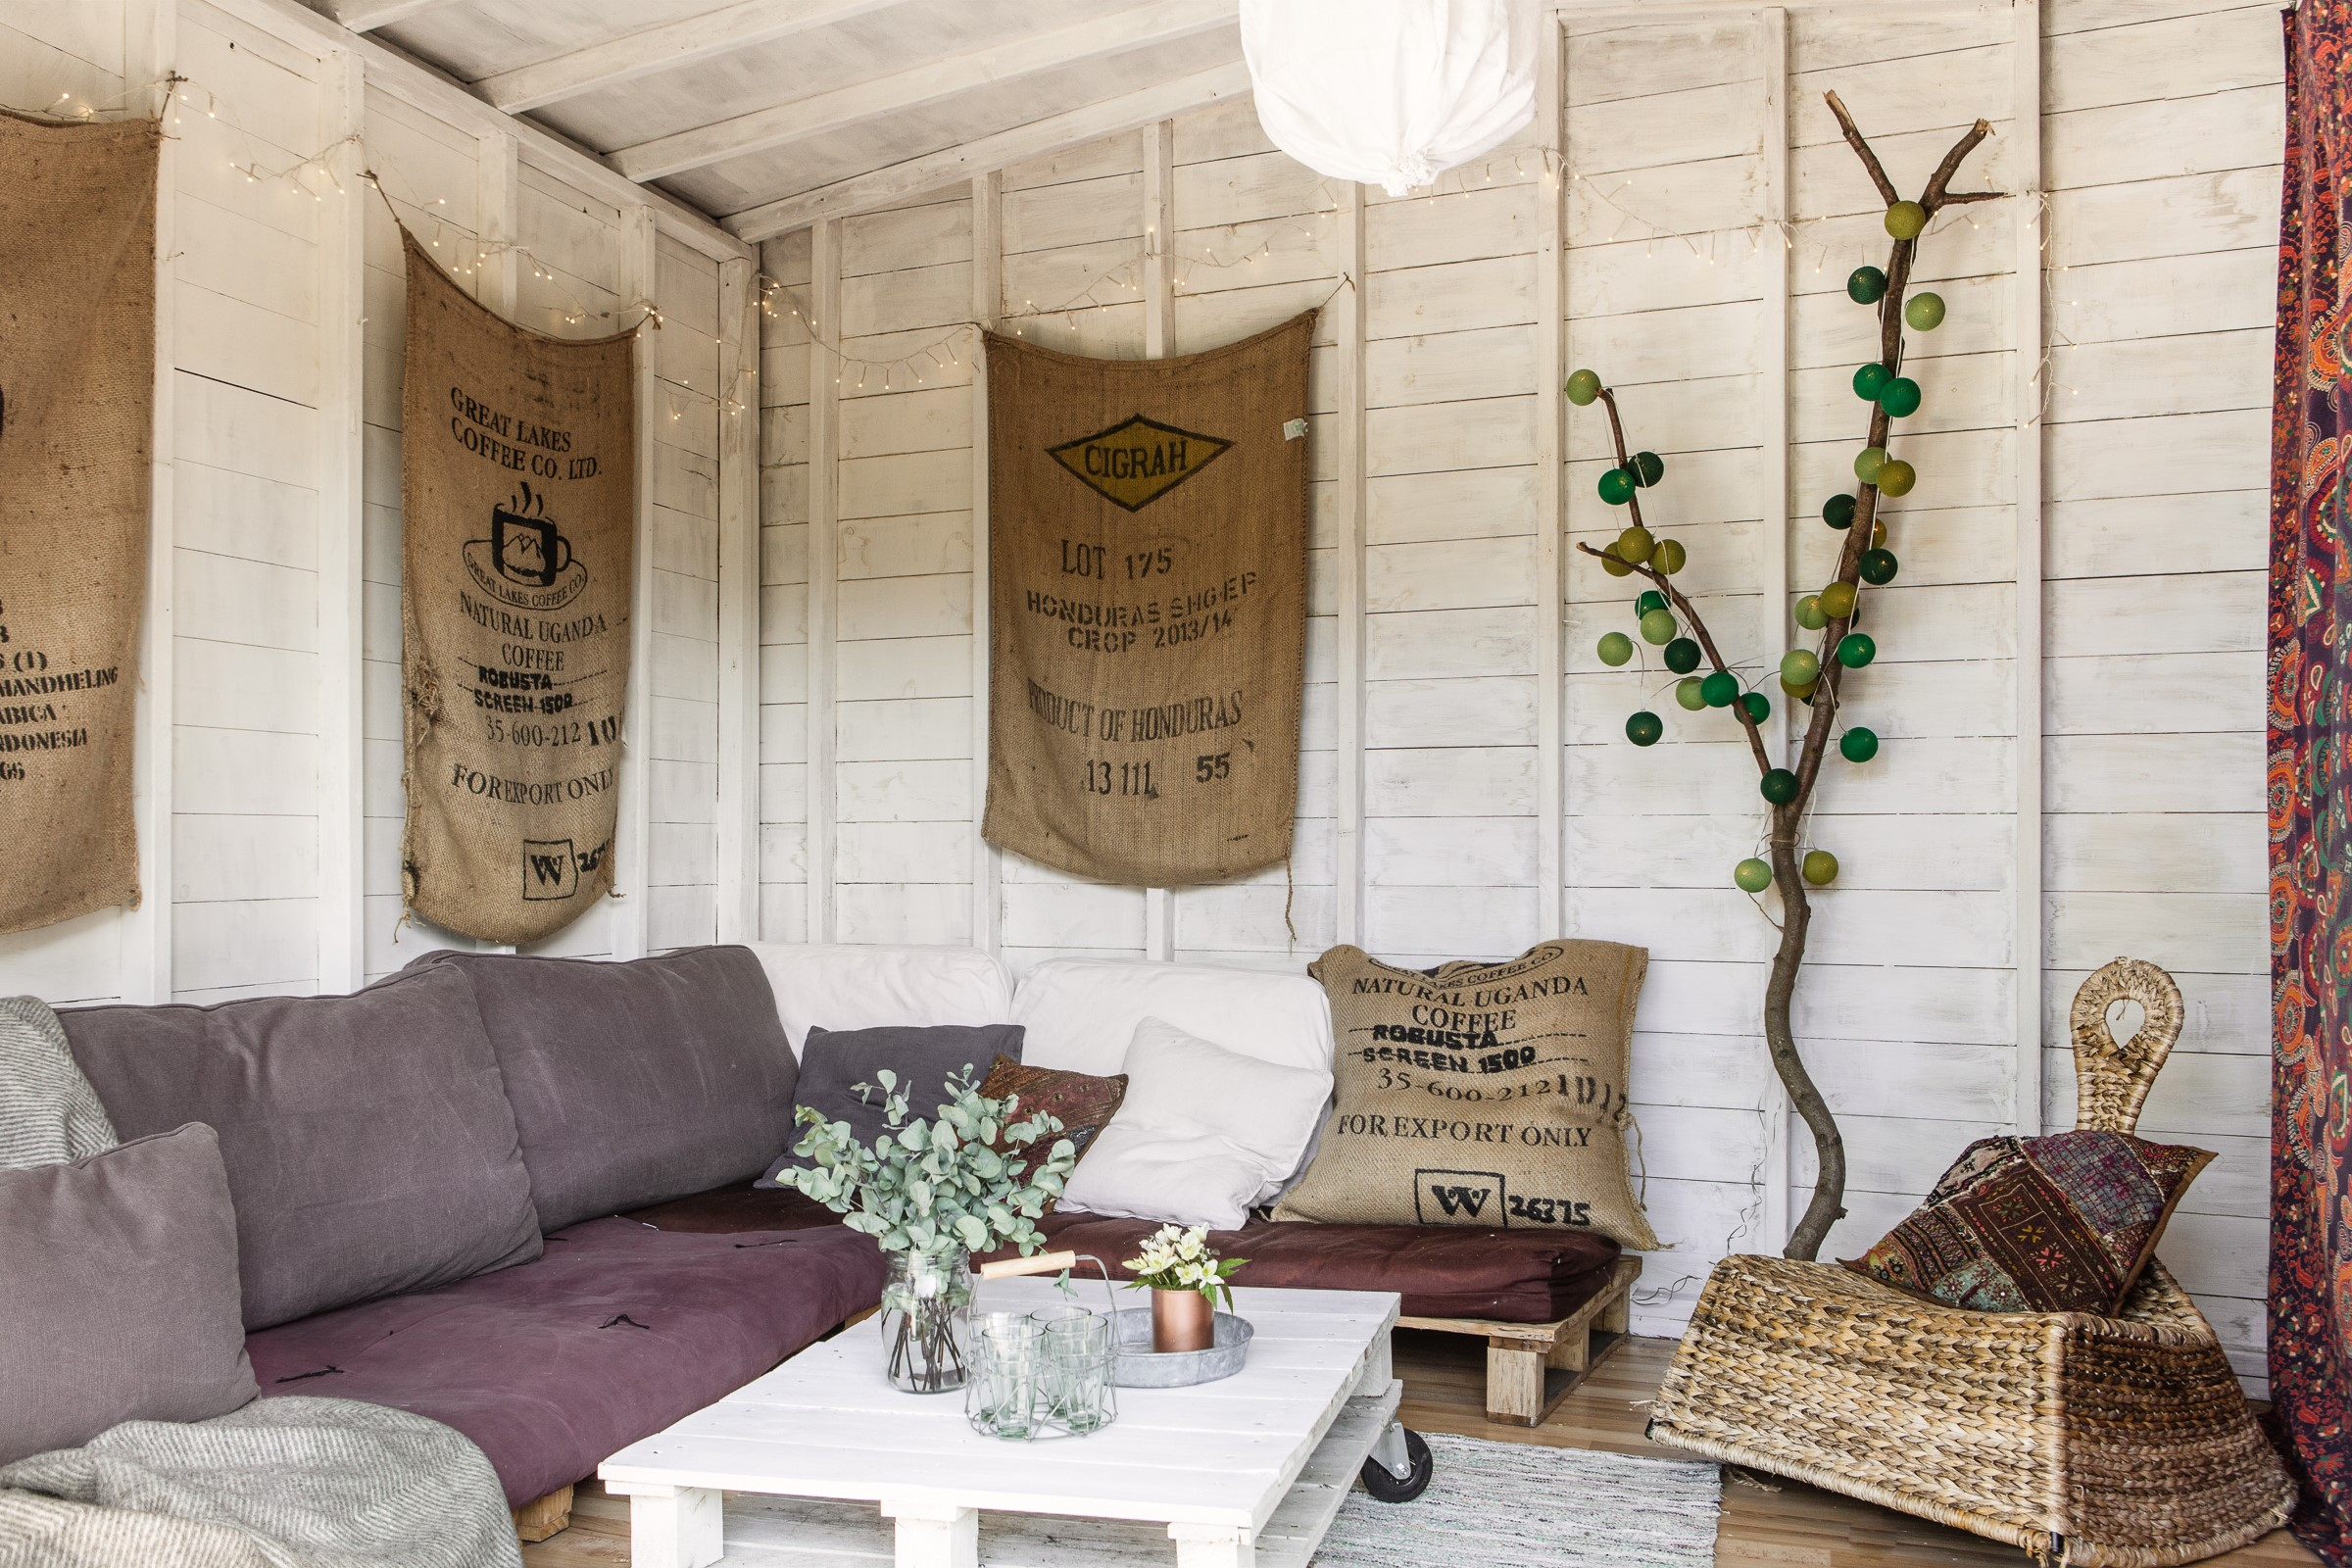 23 Sublime Summer House Ideas To Spruce Up Your Garden Home Design